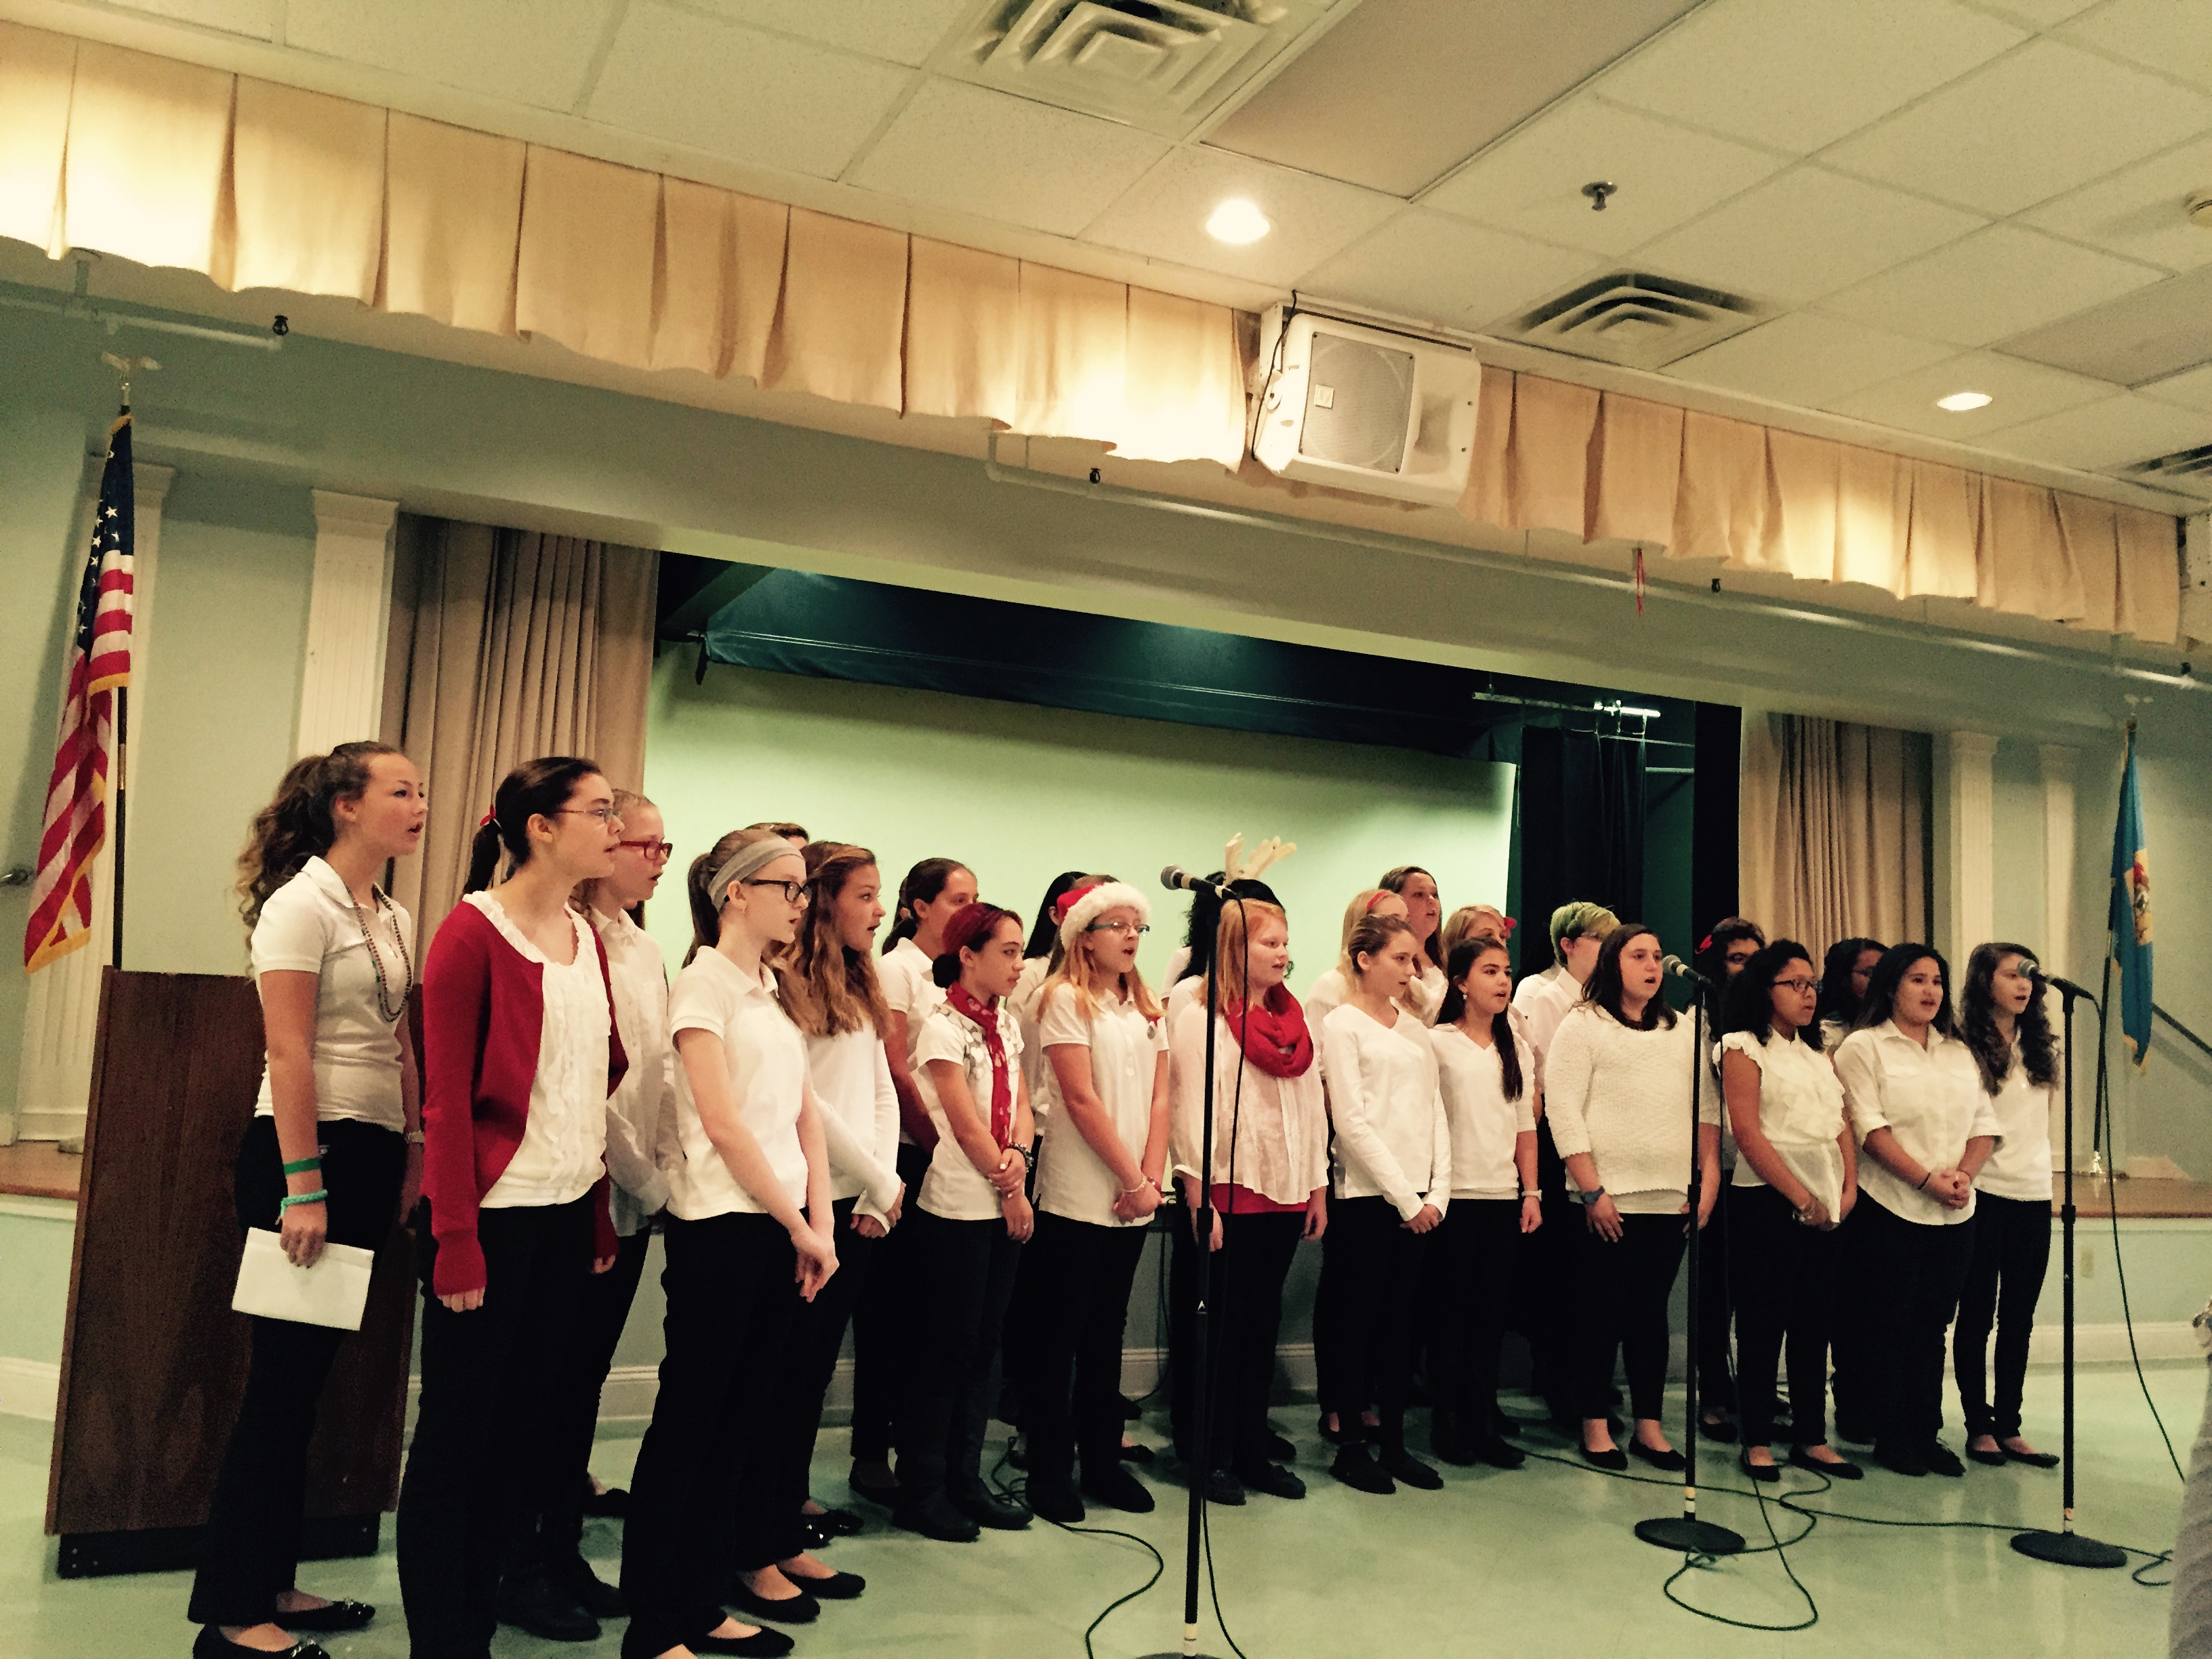 Ig Burton Milford De >> 16th Annual Choral Breakfast | People's Place